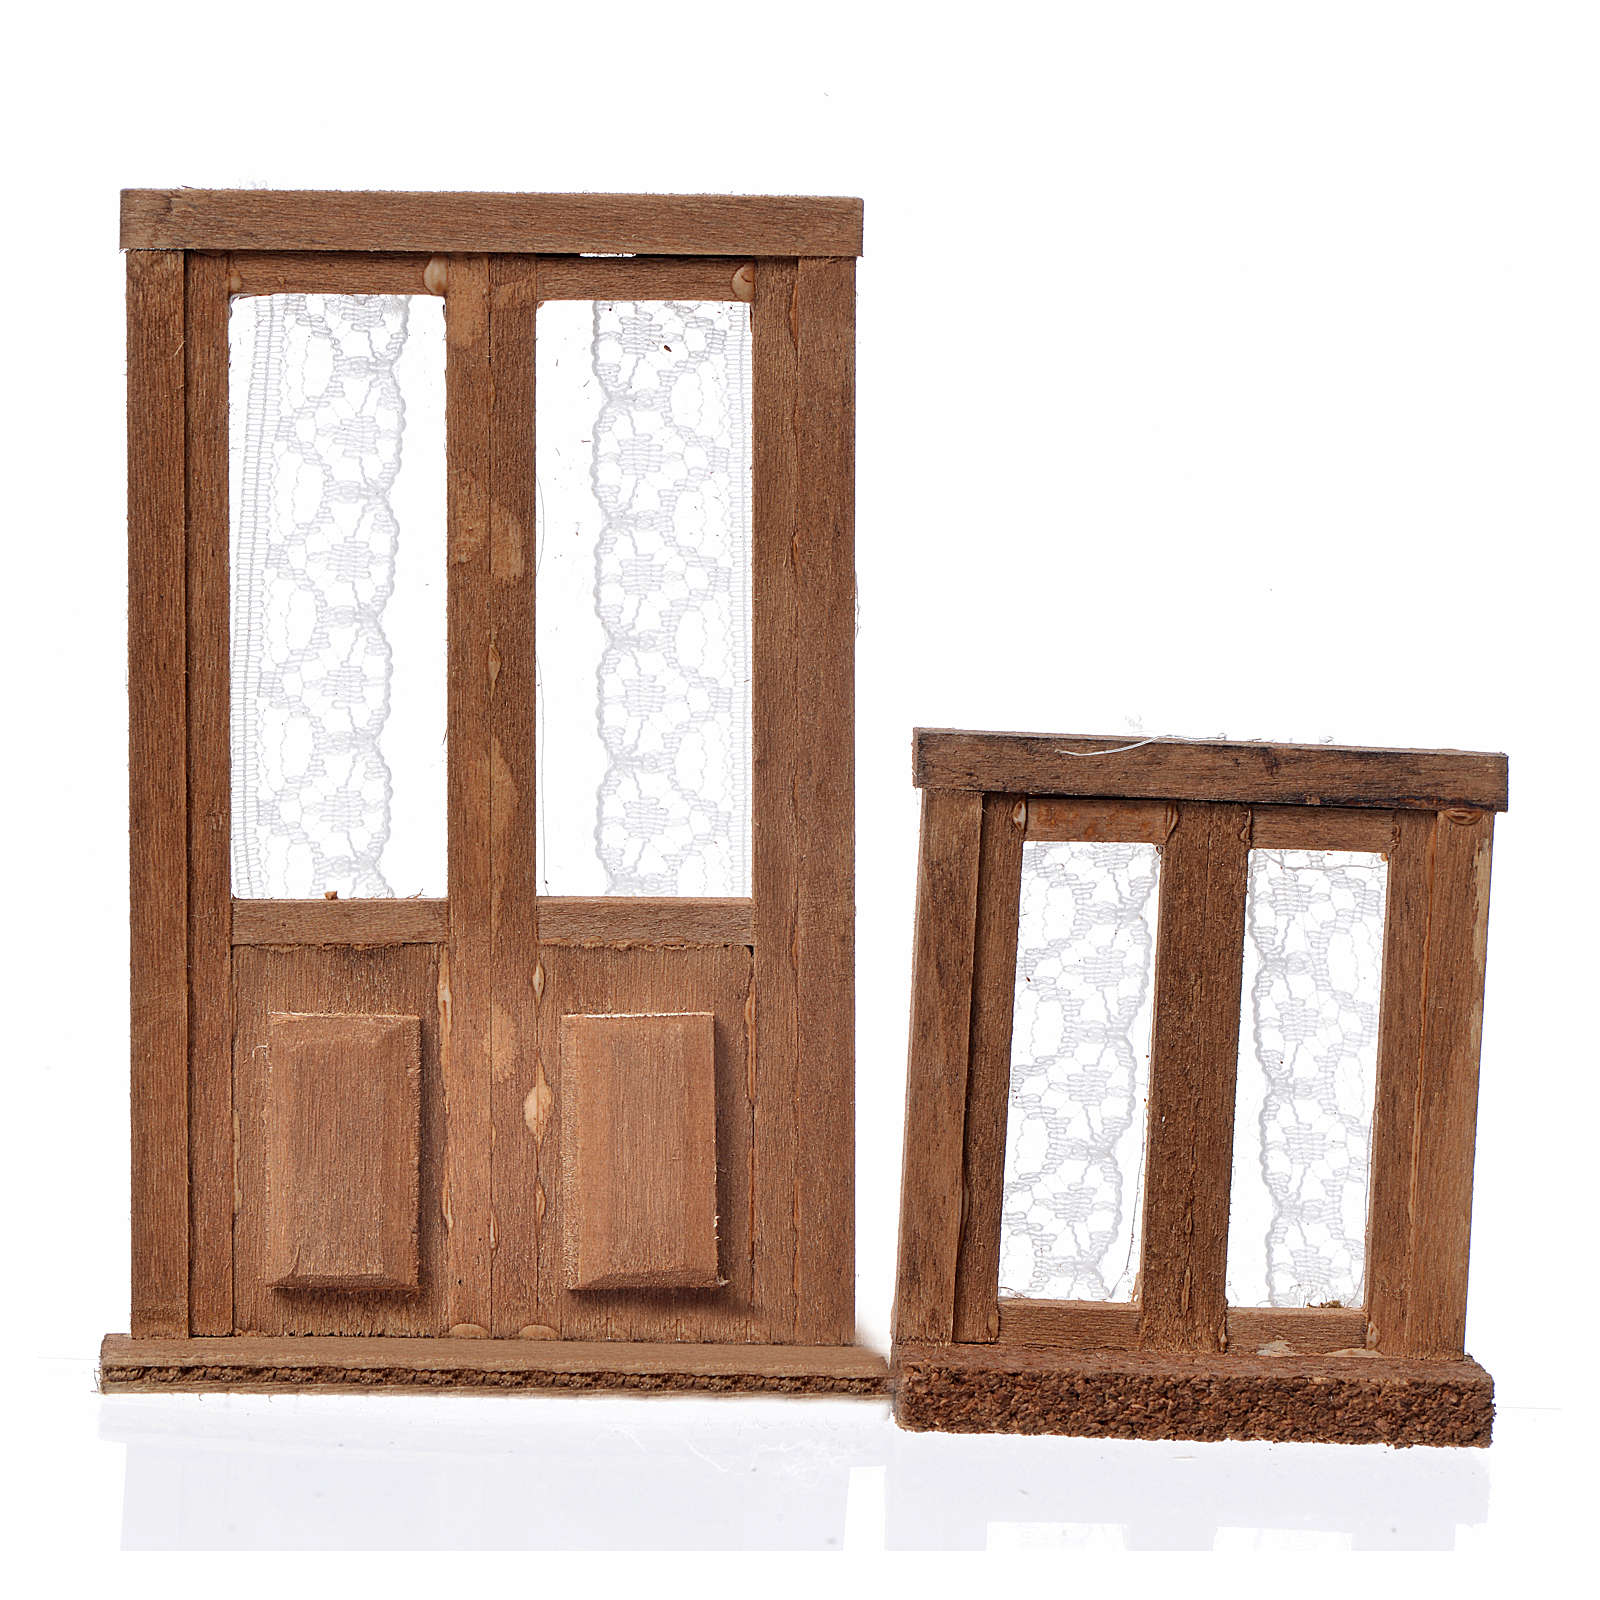 Nativity accessory, wooden frame, 2pcs, 9x6 and 5x4.5cm 4